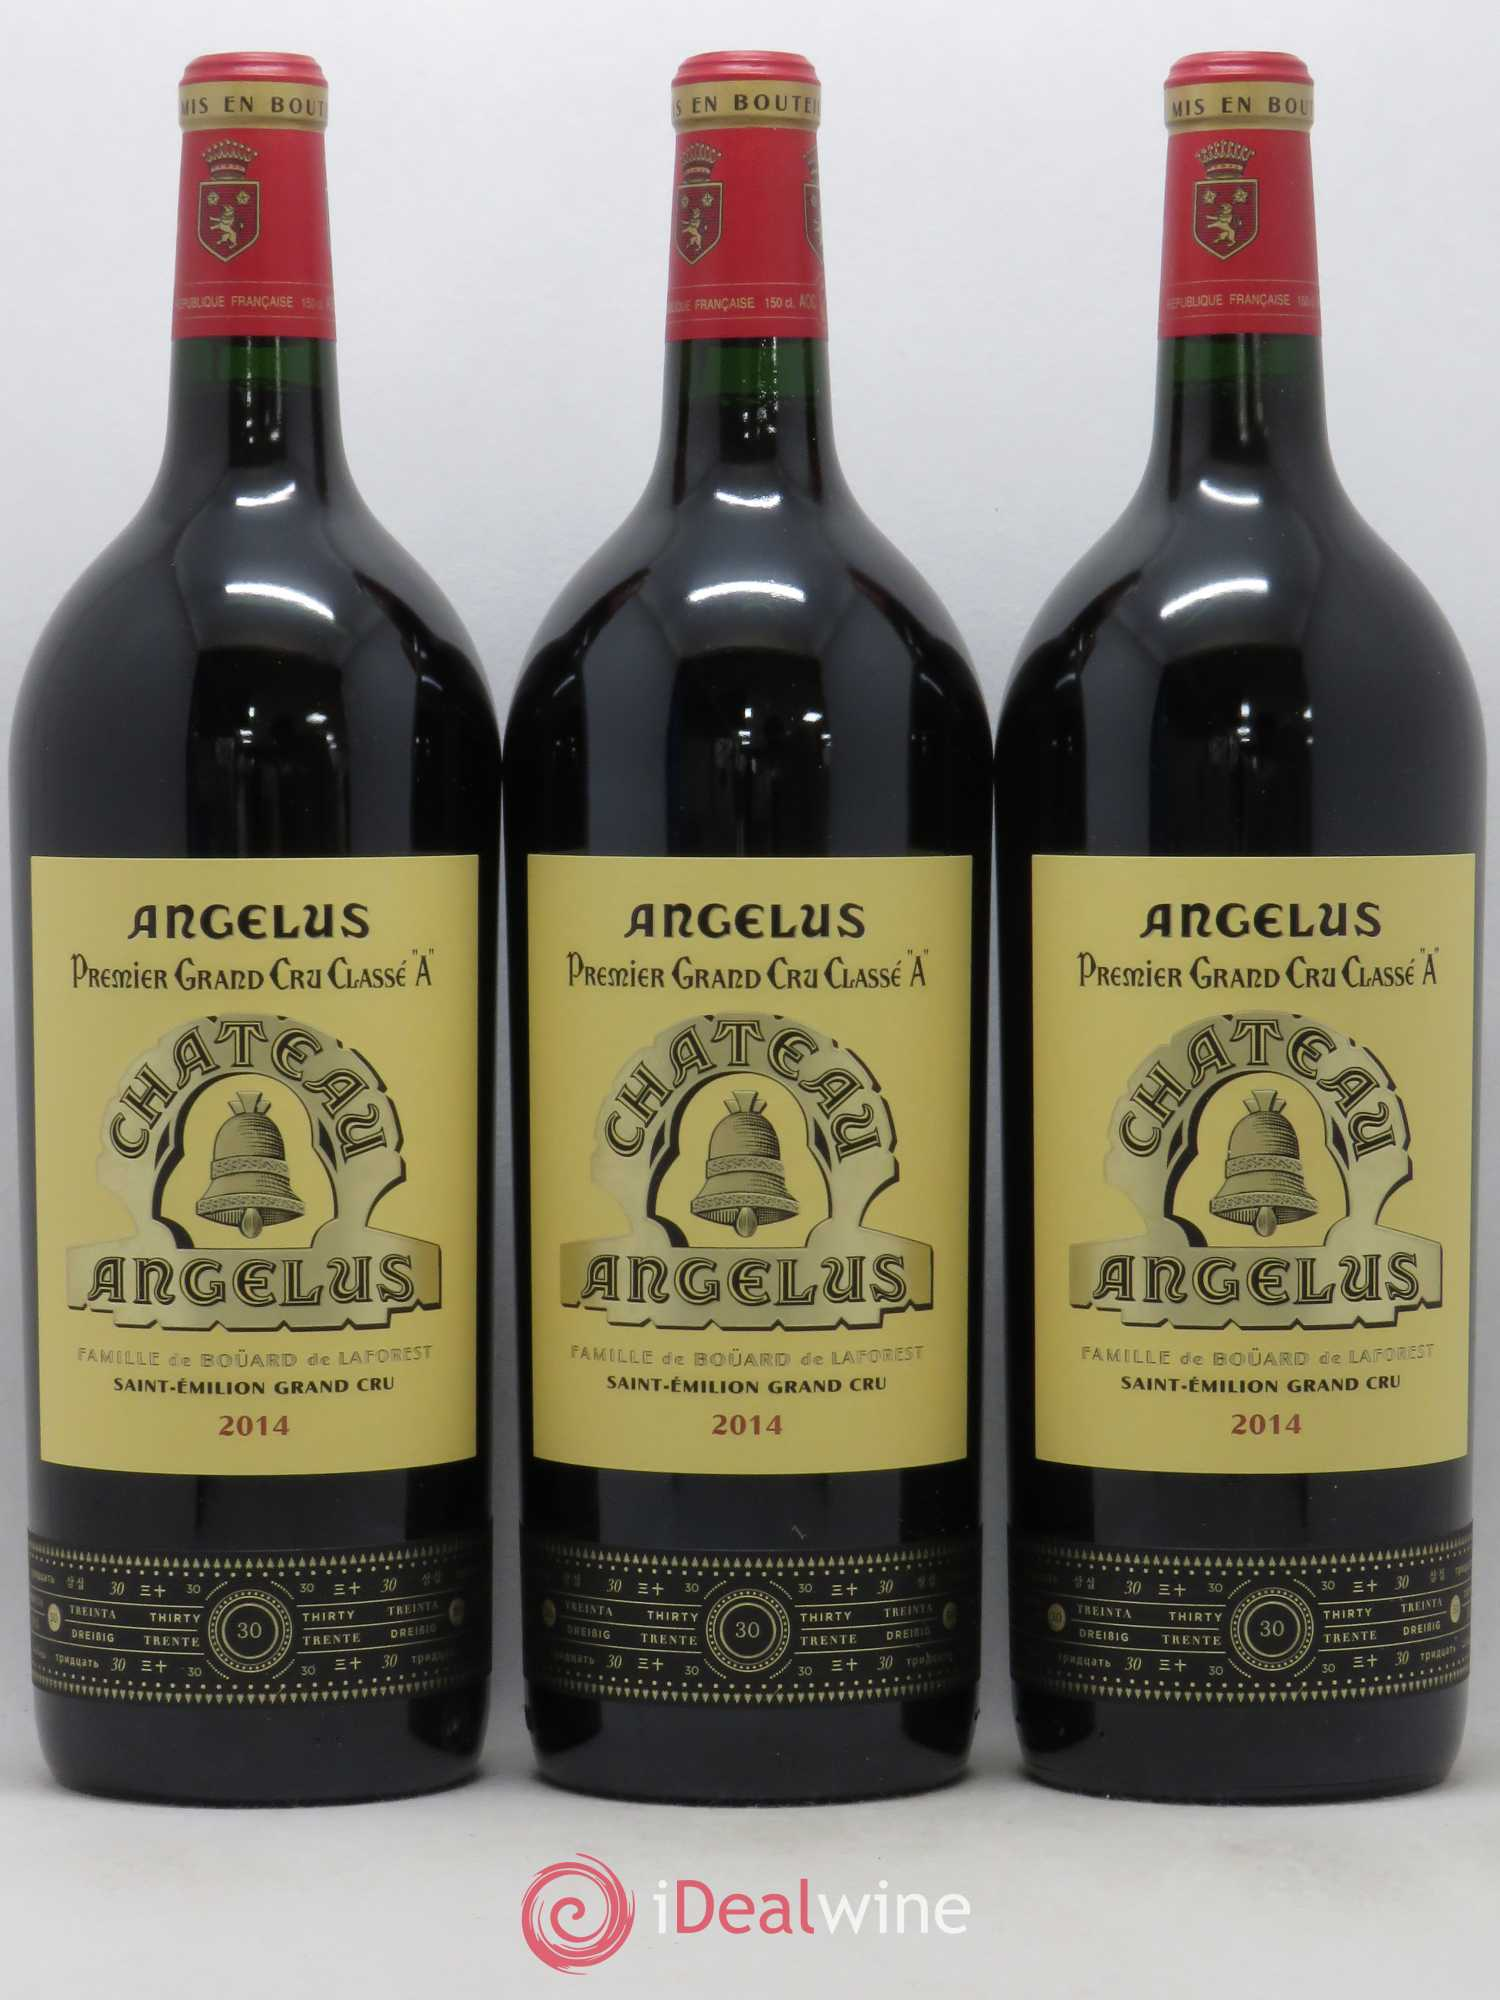 Château Angélus 1er Grand Cru Classé A  2014 - Lot of 3 Magnums